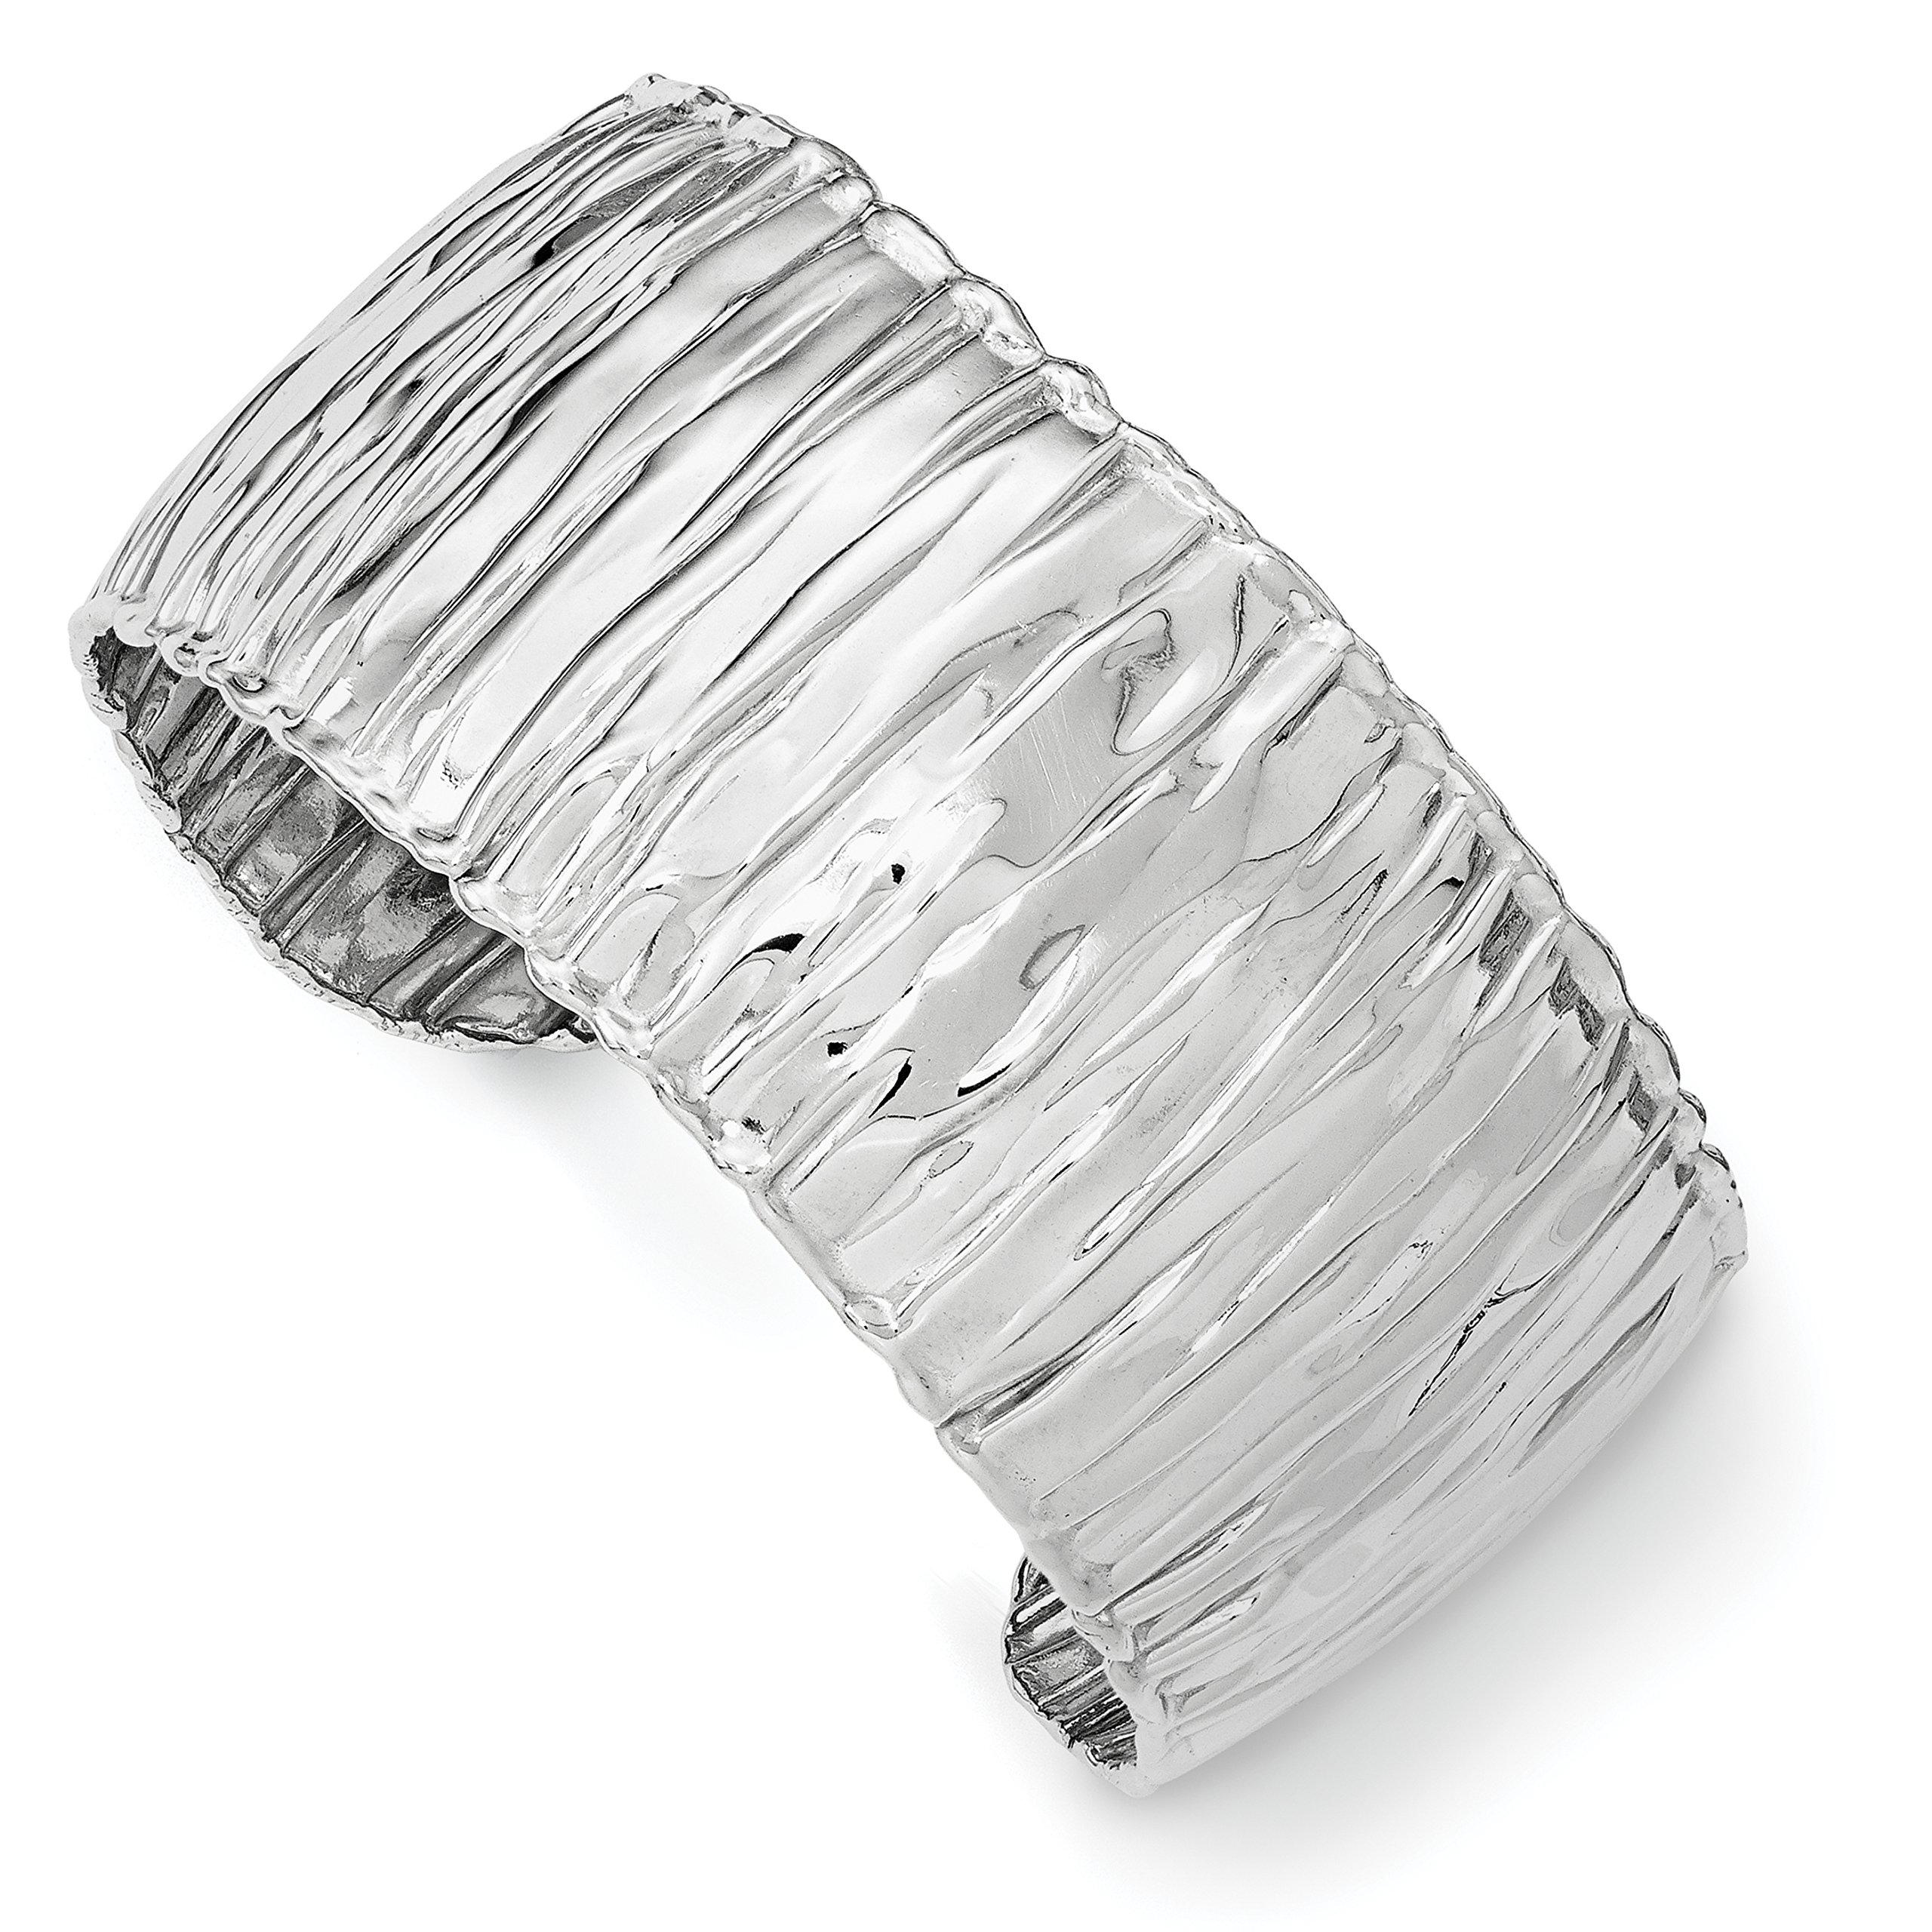 ICE CARATS 925 Sterling Silver Textured Cuff Bangle Bracelet Expandable Stackable Fine Jewelry Gift Set For Women Heart